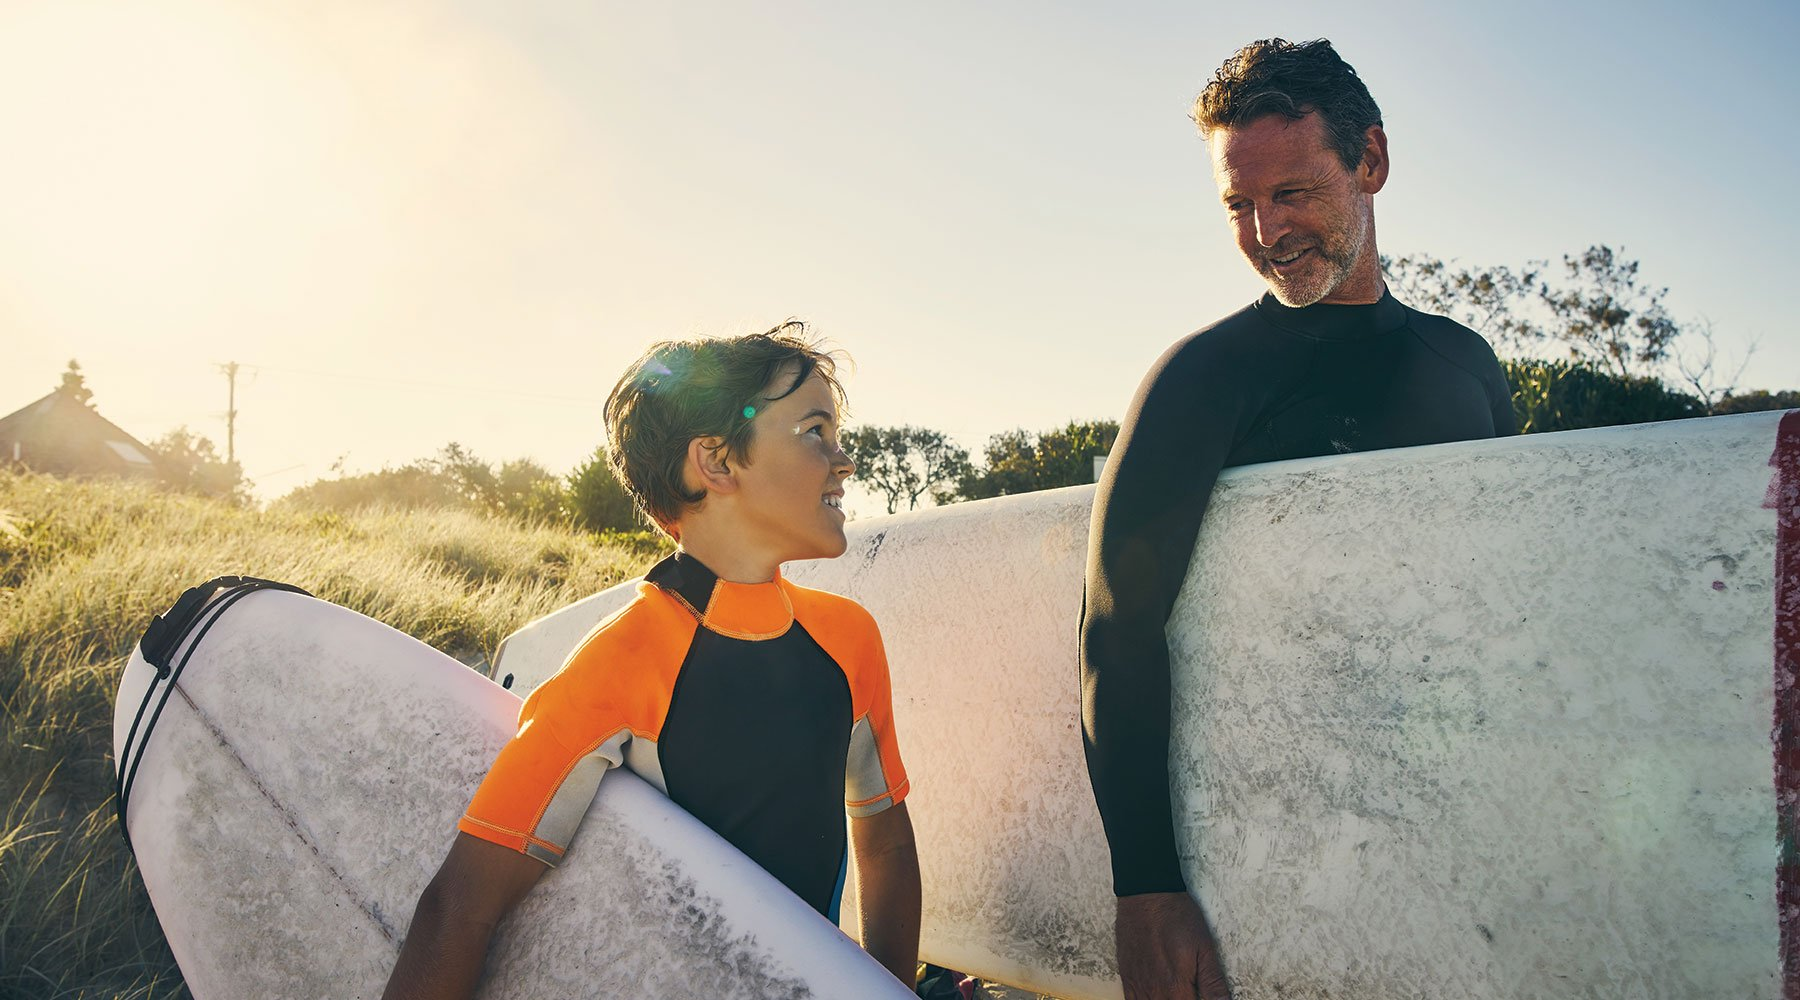 Father and young son about to go surfing together in Perth, Western Australia